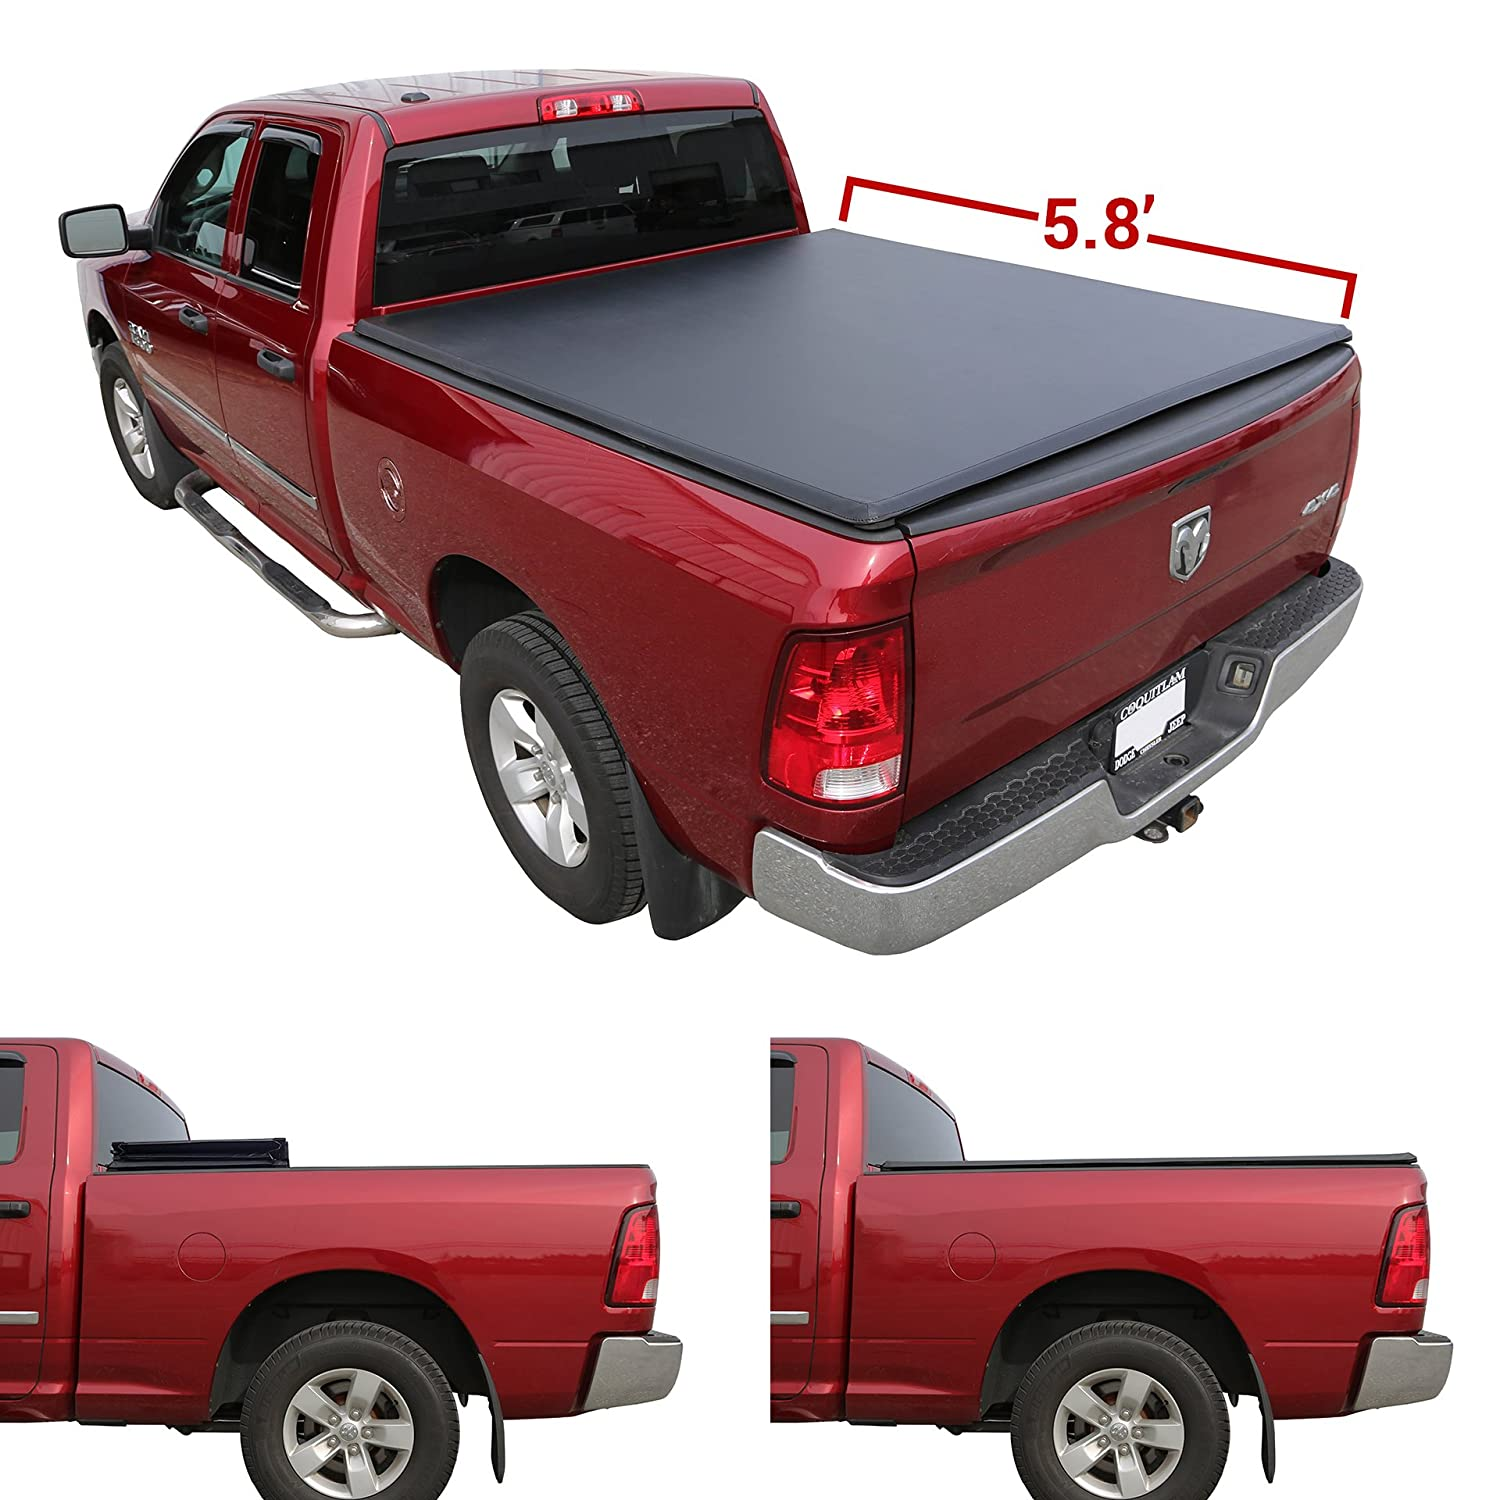 Galaxy Auto Soft Tri-Fold 2007-18 Chevy Silverado/GMC Sierra 5.8' Bed (Fleetside Models Only, Excluding '07 Classic) - Black Trifold Truck Bed Tonneau Cover Excluding ' 07 Classic) - Black Trifold Truck Bed Tonneau Cover